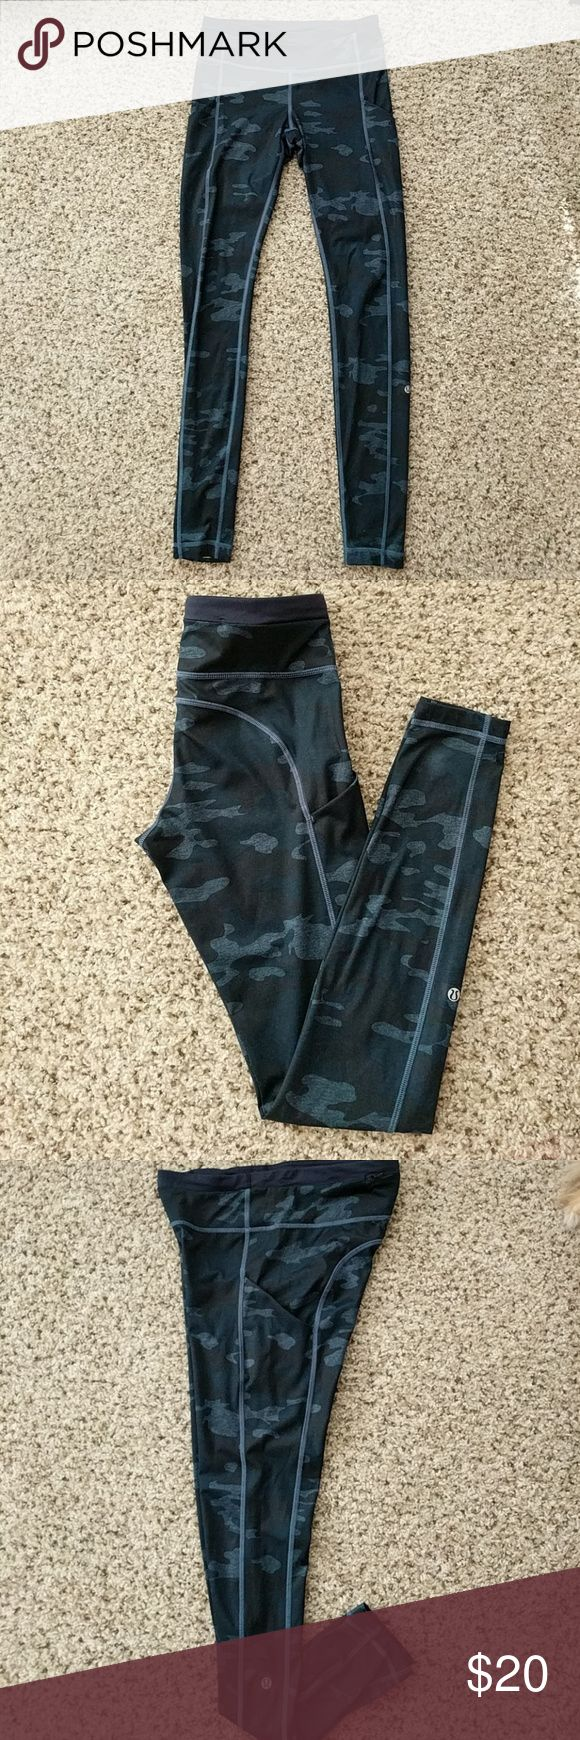 Lululemon blue camo pants Good used condition Lululemon pants. The style is from a few years ago. Blue camo pattern, and pockets on the side! lululemon athletica Pants Leggings